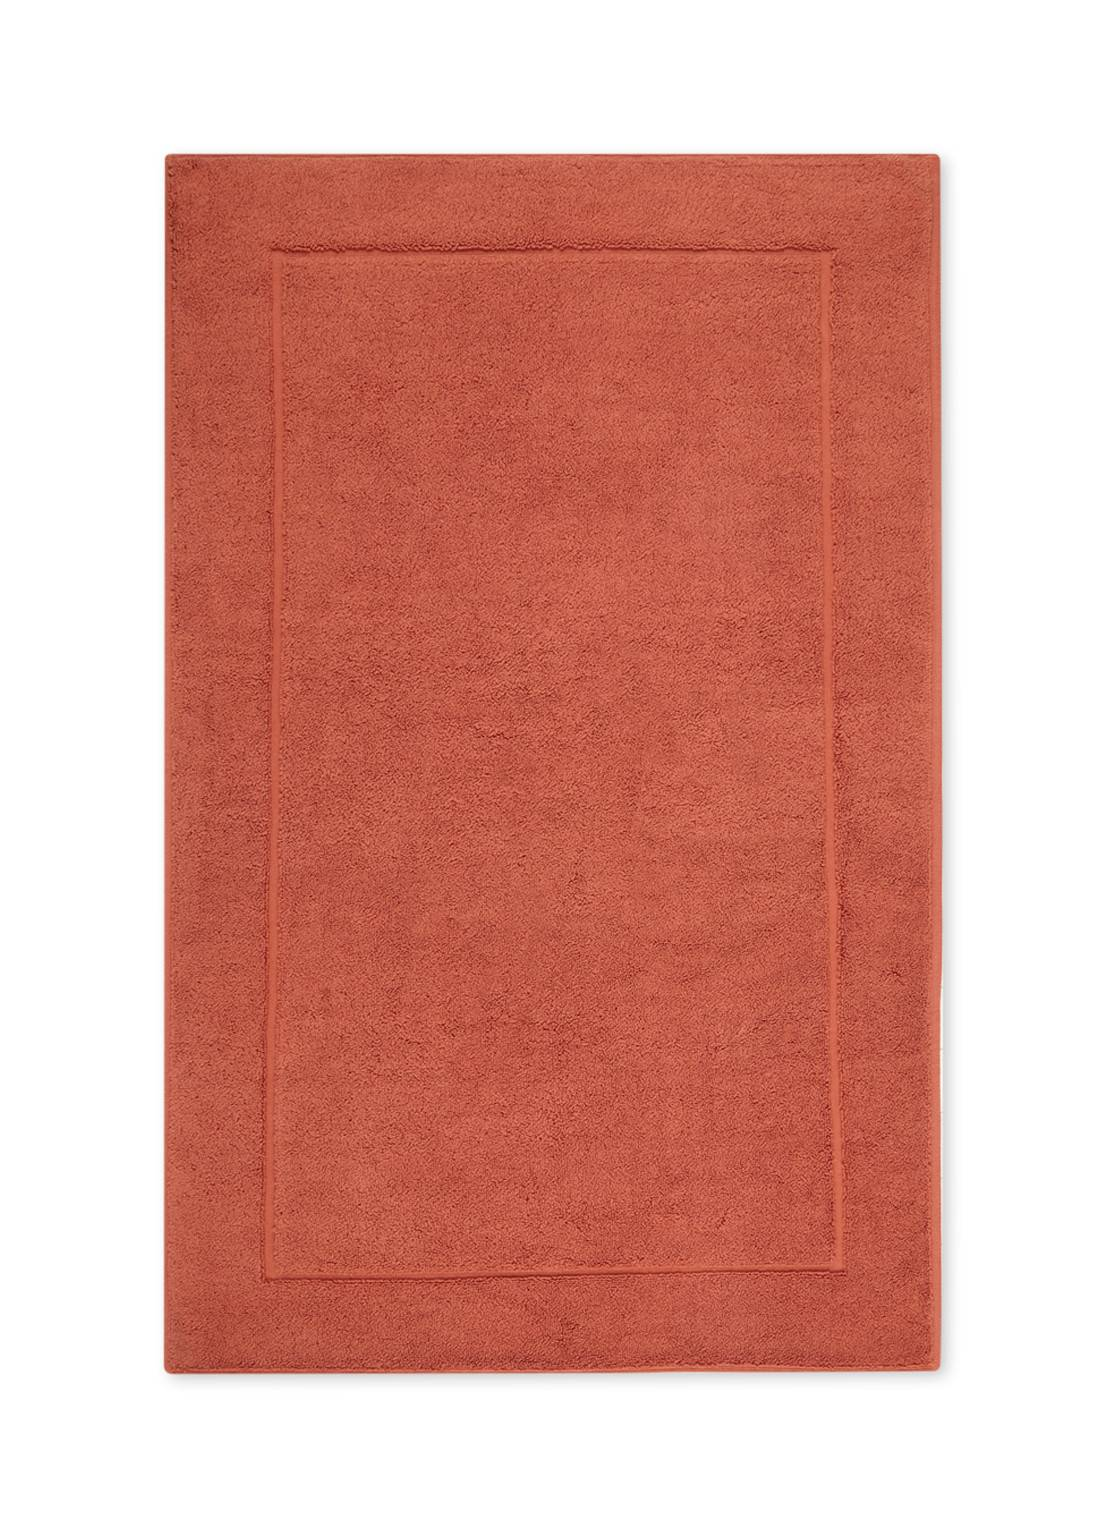 aquanova Tapis de bain en coton égyptien LONDON - Orange foncé